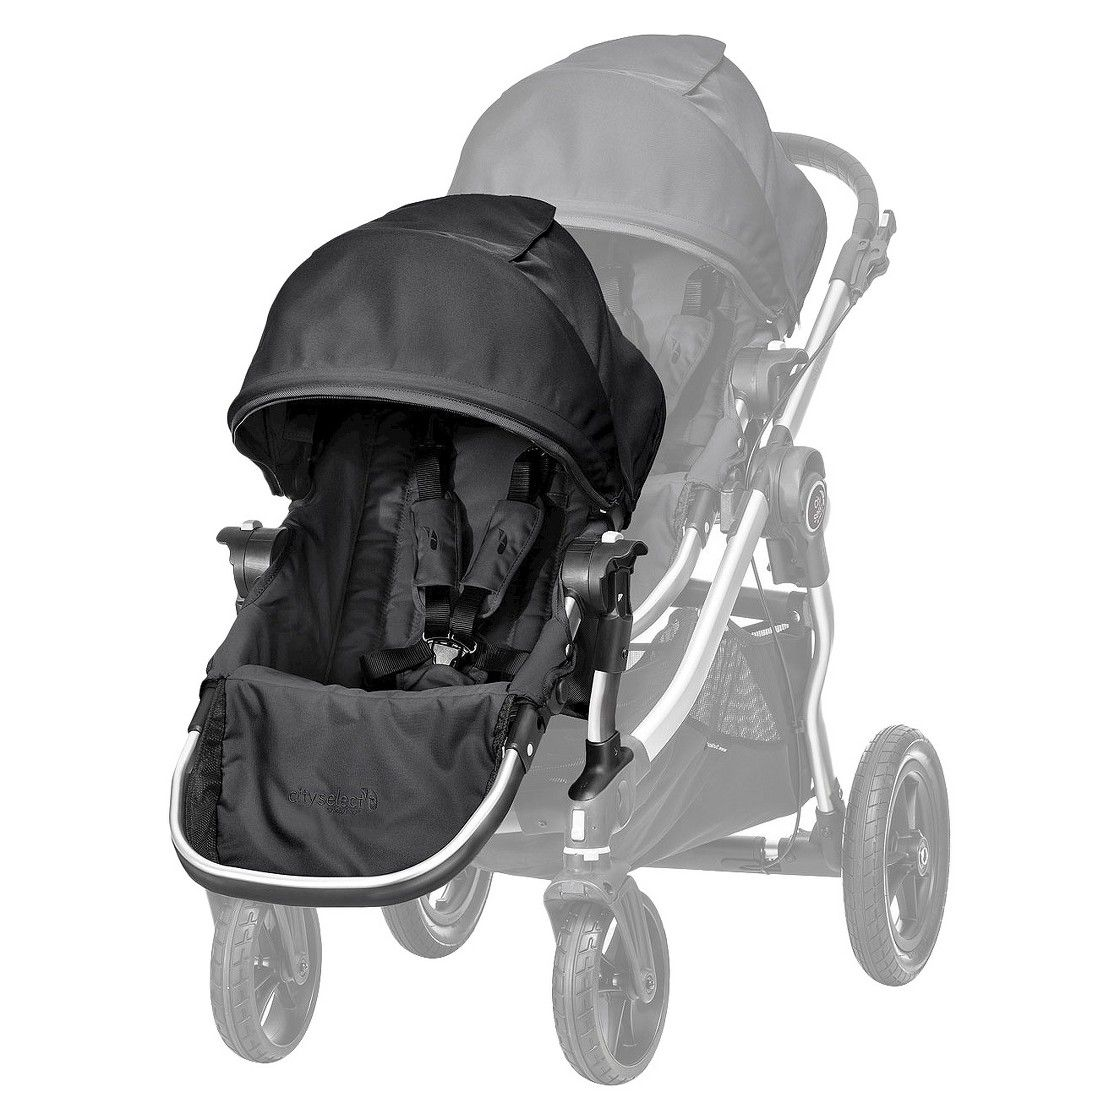 Baby Jogger City Select Second Seat Onyx Baby jogger